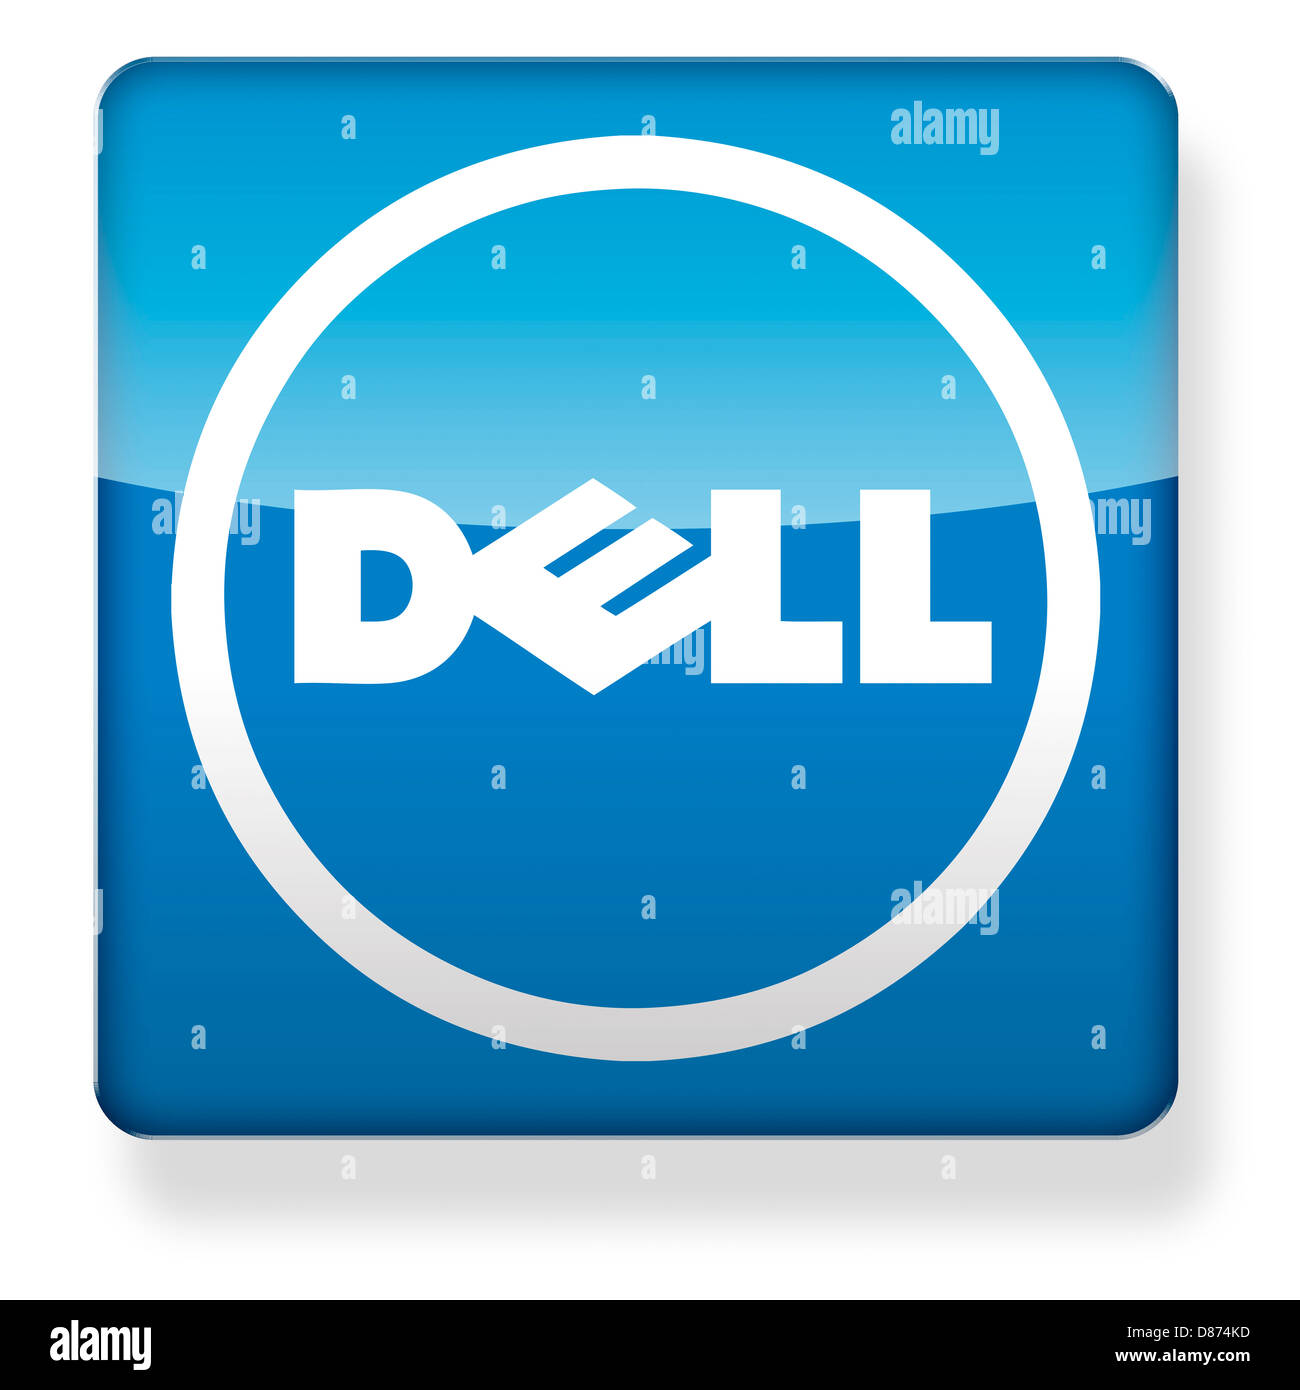 dell logo as an app icon clipping path included stock photo 56705697 alamy. Black Bedroom Furniture Sets. Home Design Ideas